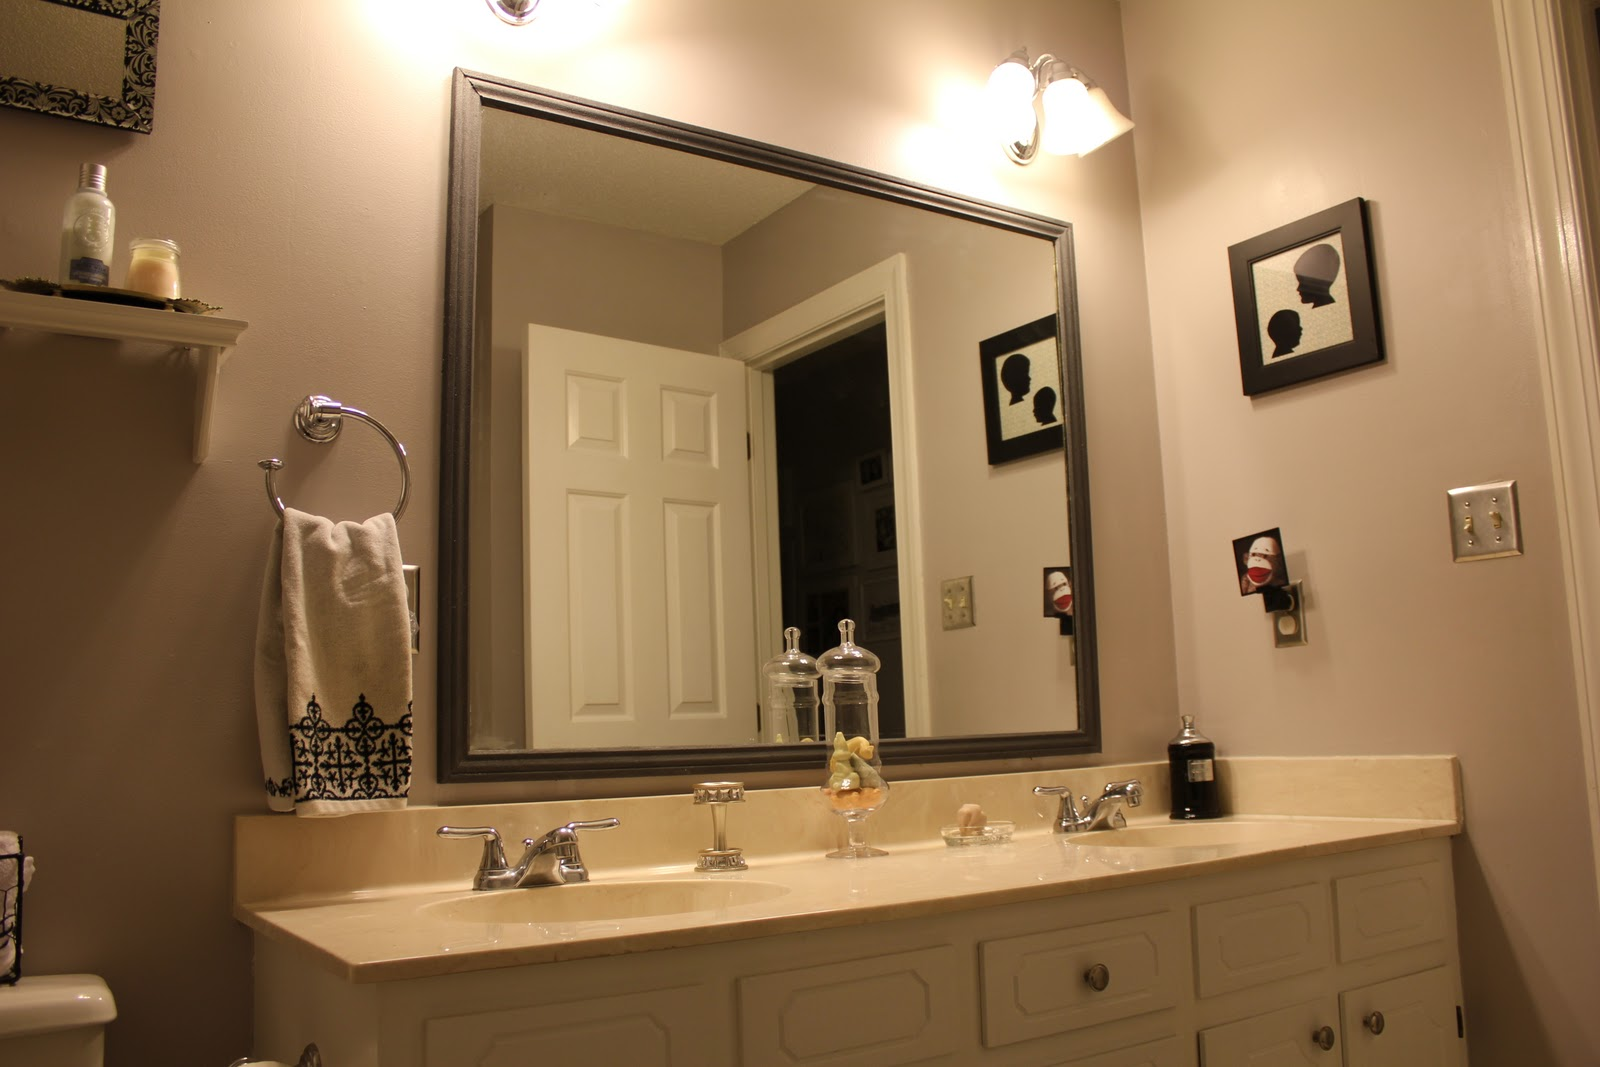 Choose Grey Framed Bathroom Mirrors for Minimalist Bathroom with White Vanity and Granite Top